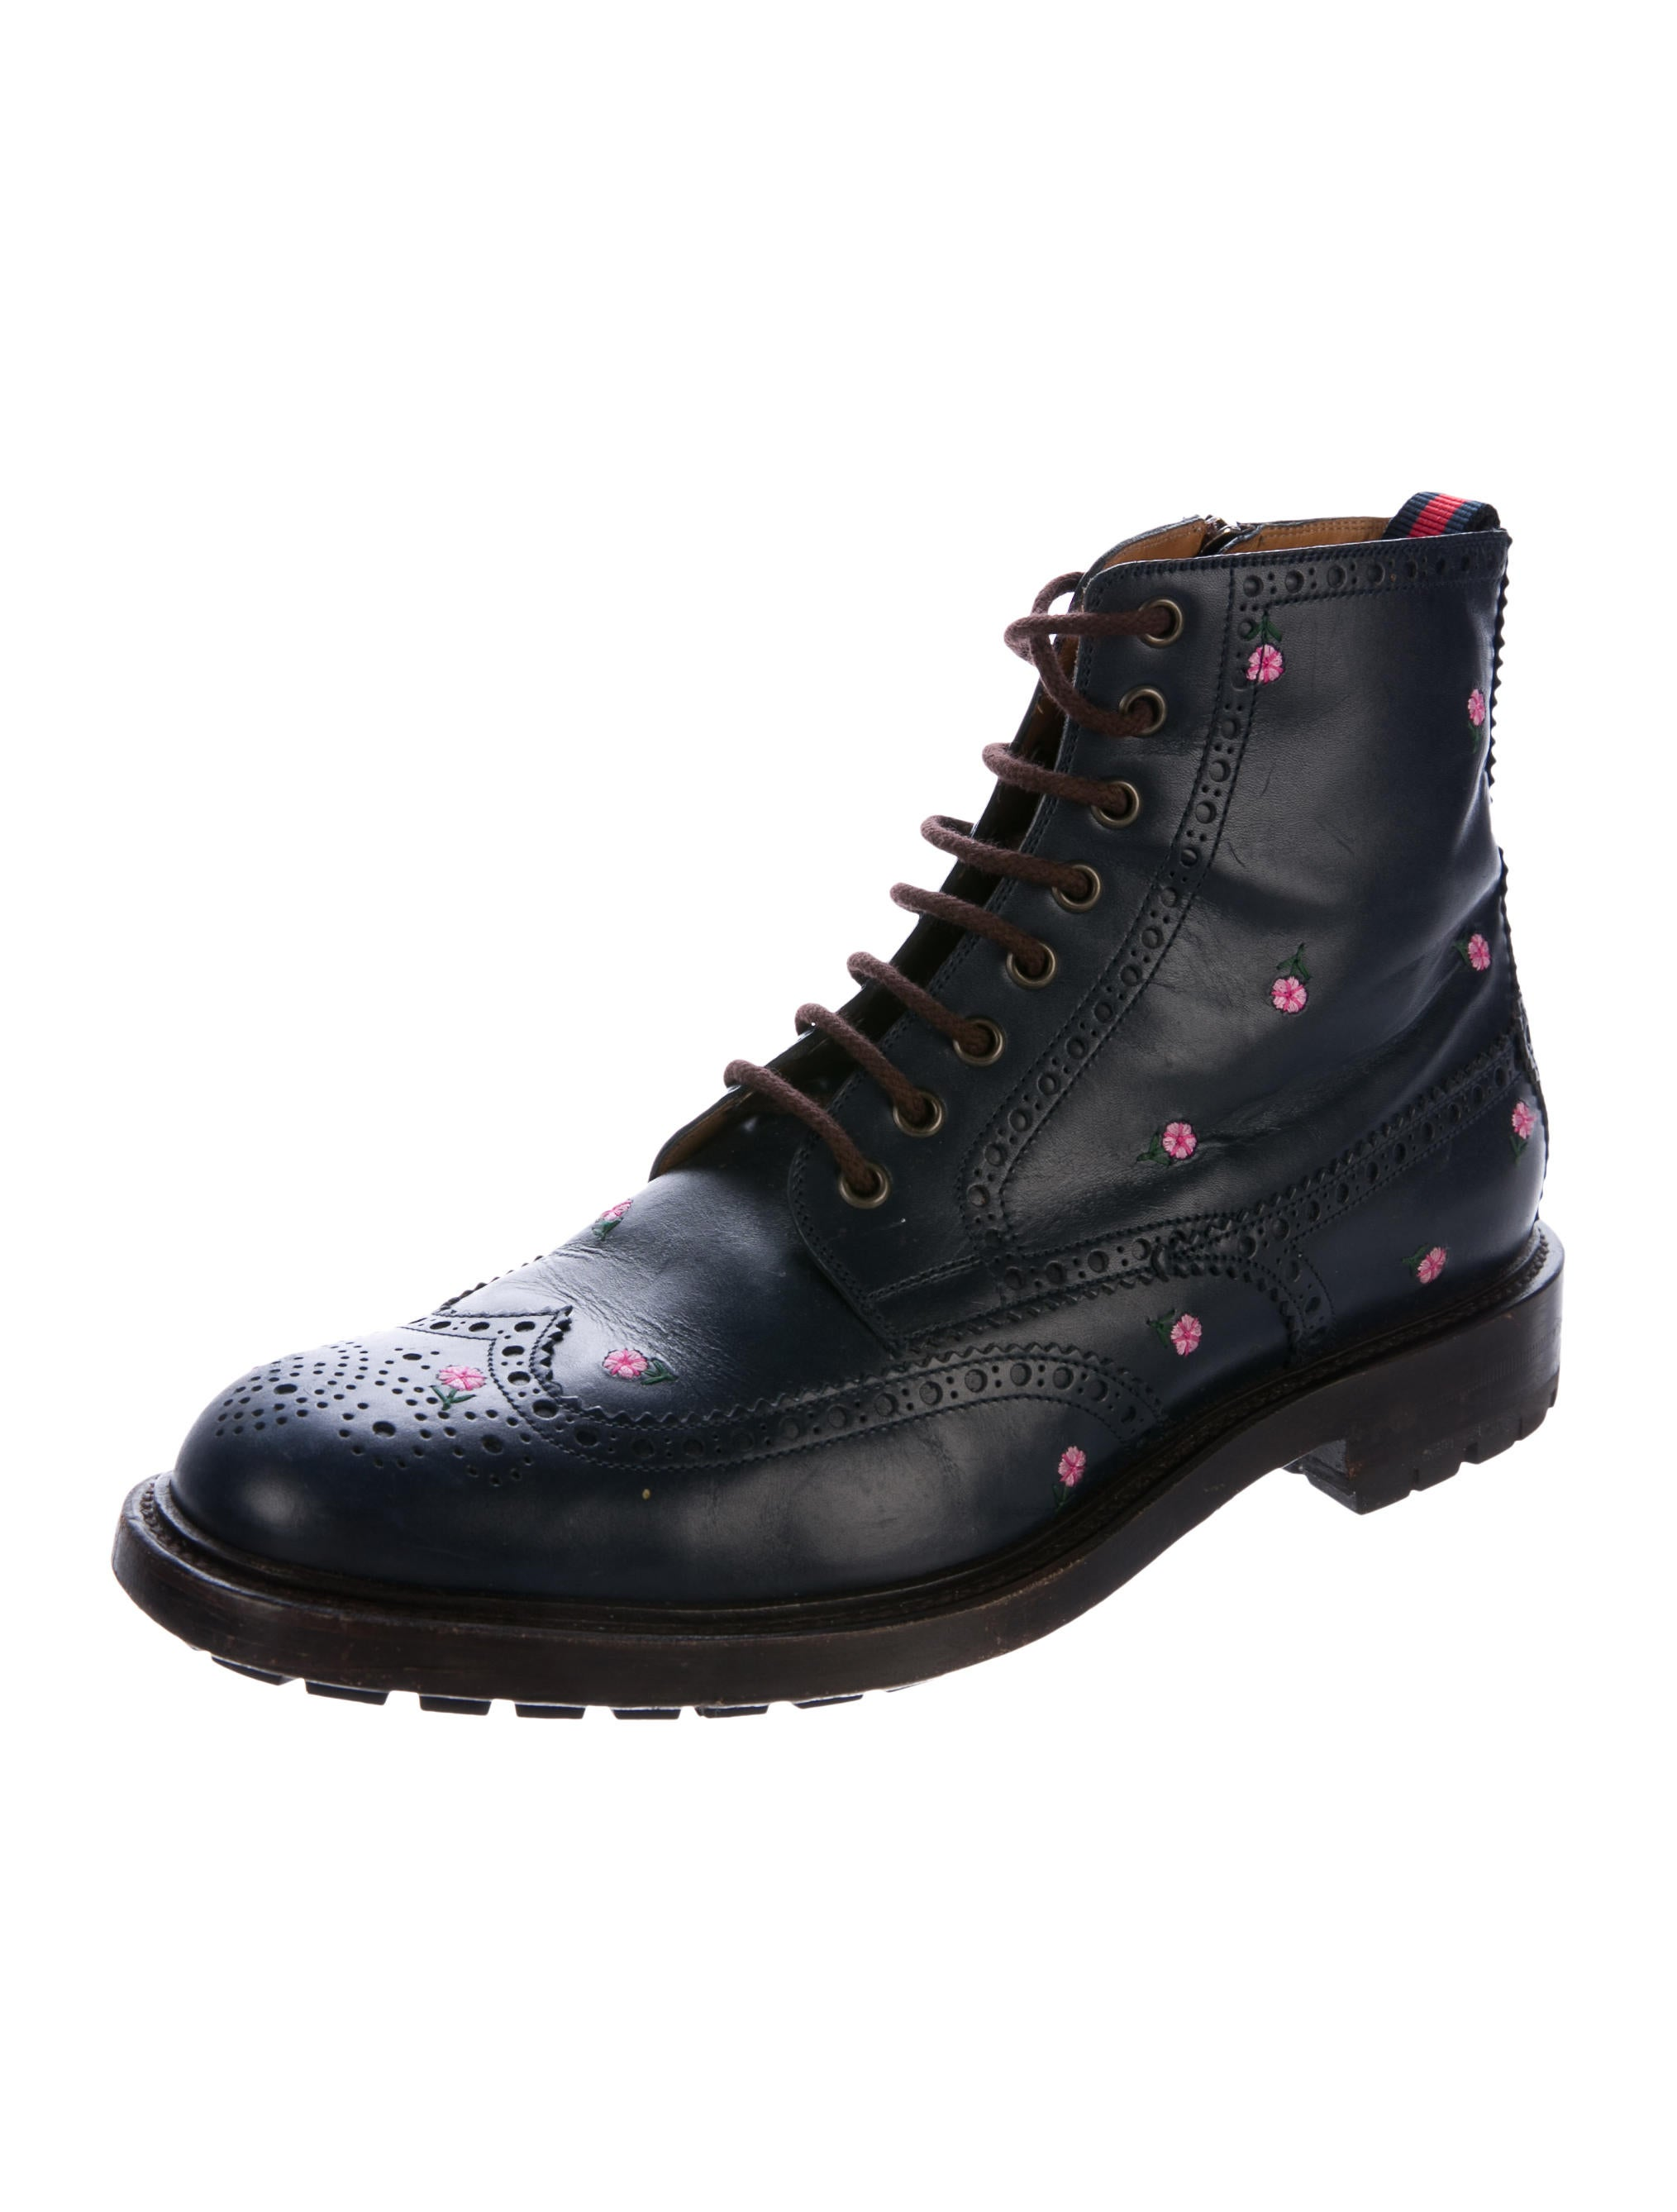 gucci floral-embroidered brogue boots - shoes